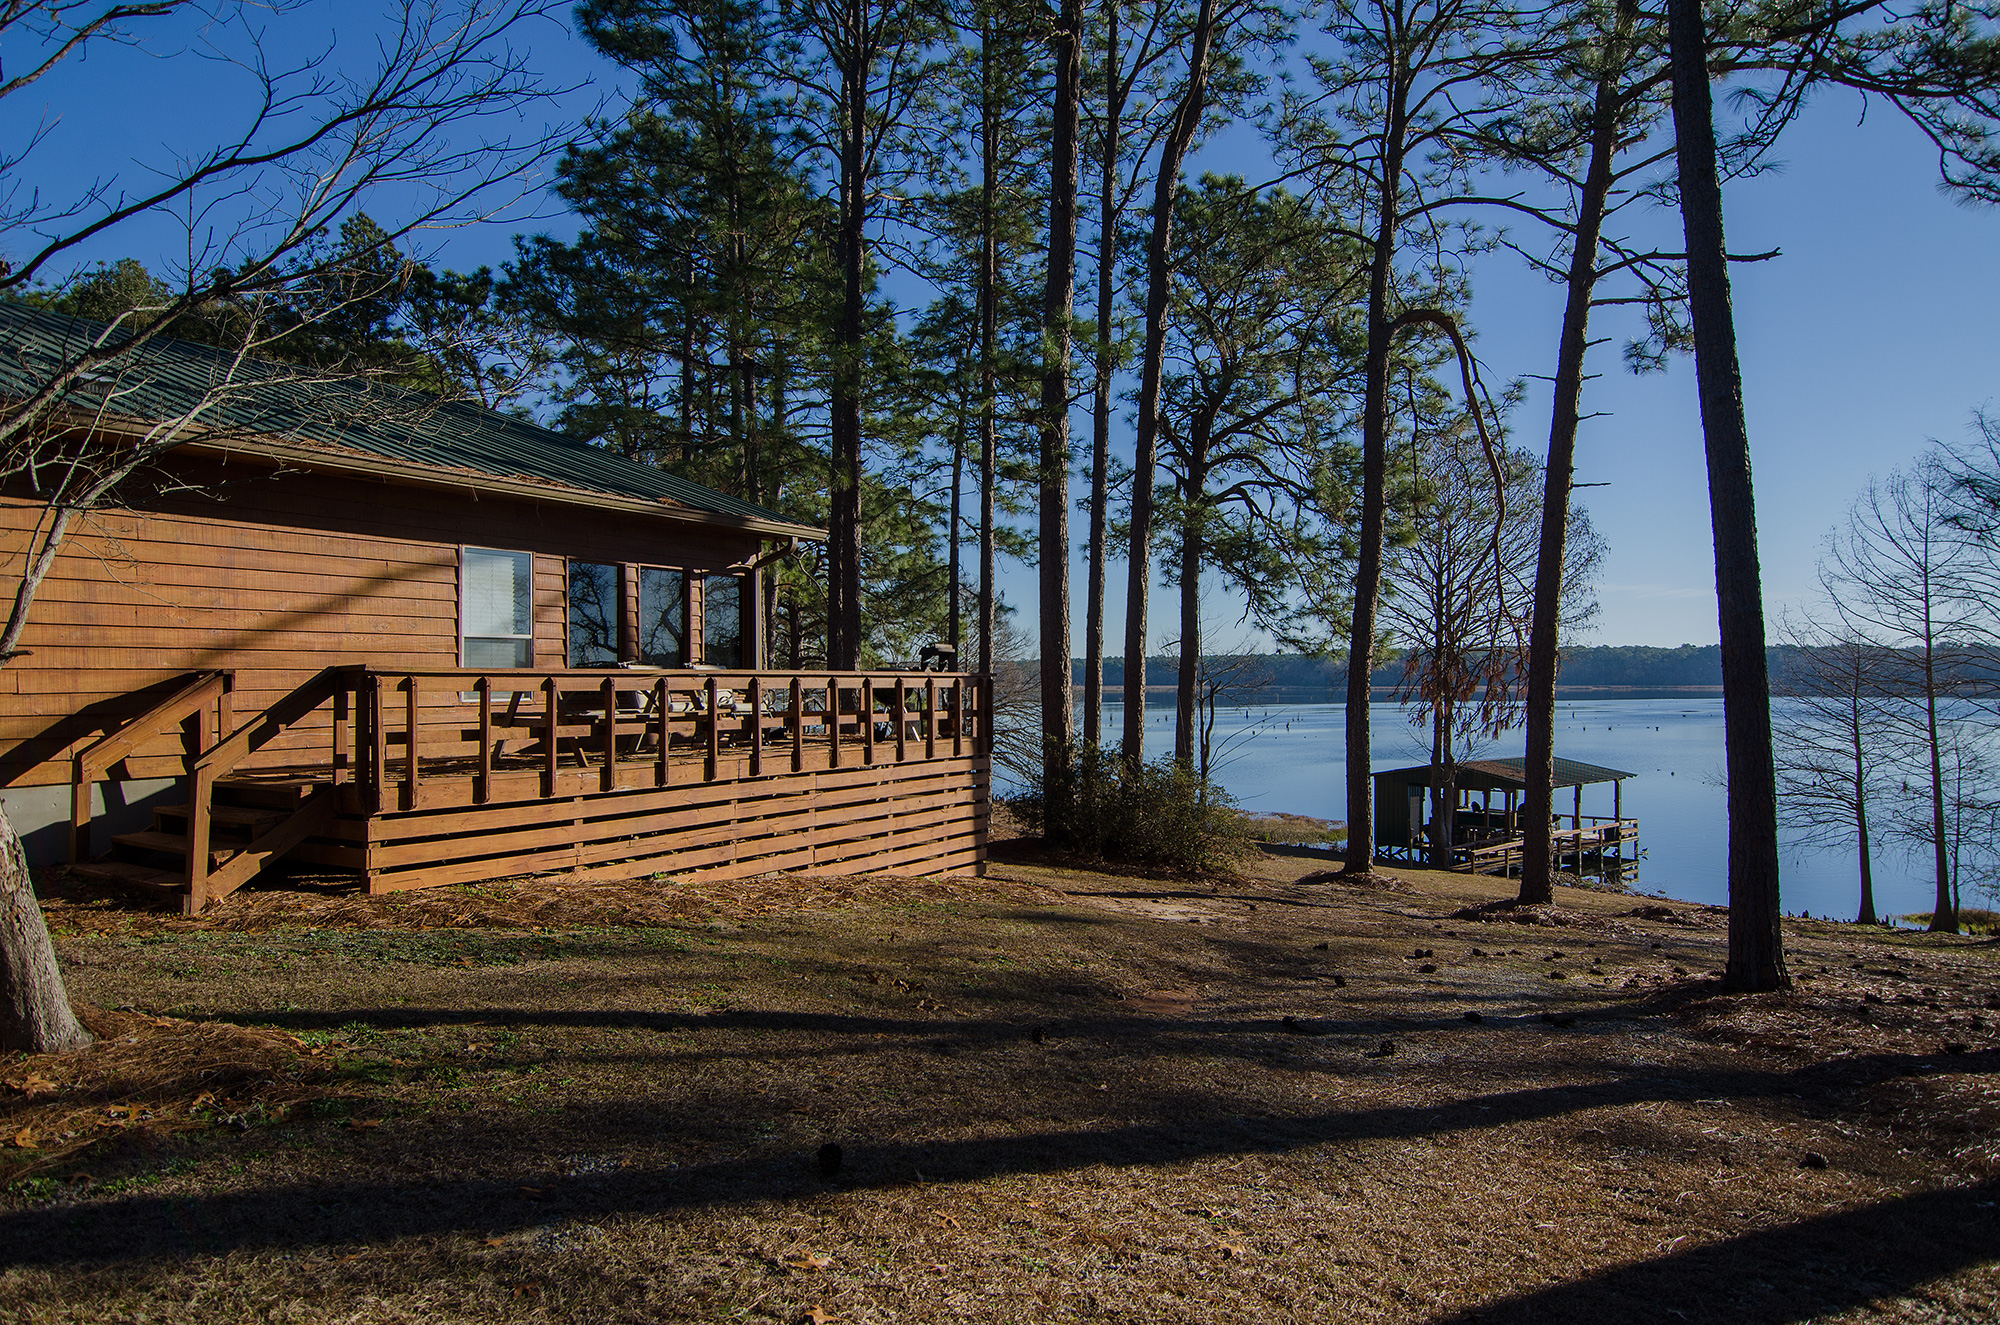 3riversrealty,spring-creek,watefront,south-georgia,lake-seminole,vacation-home,waterfront-view,mills-brock.jpg